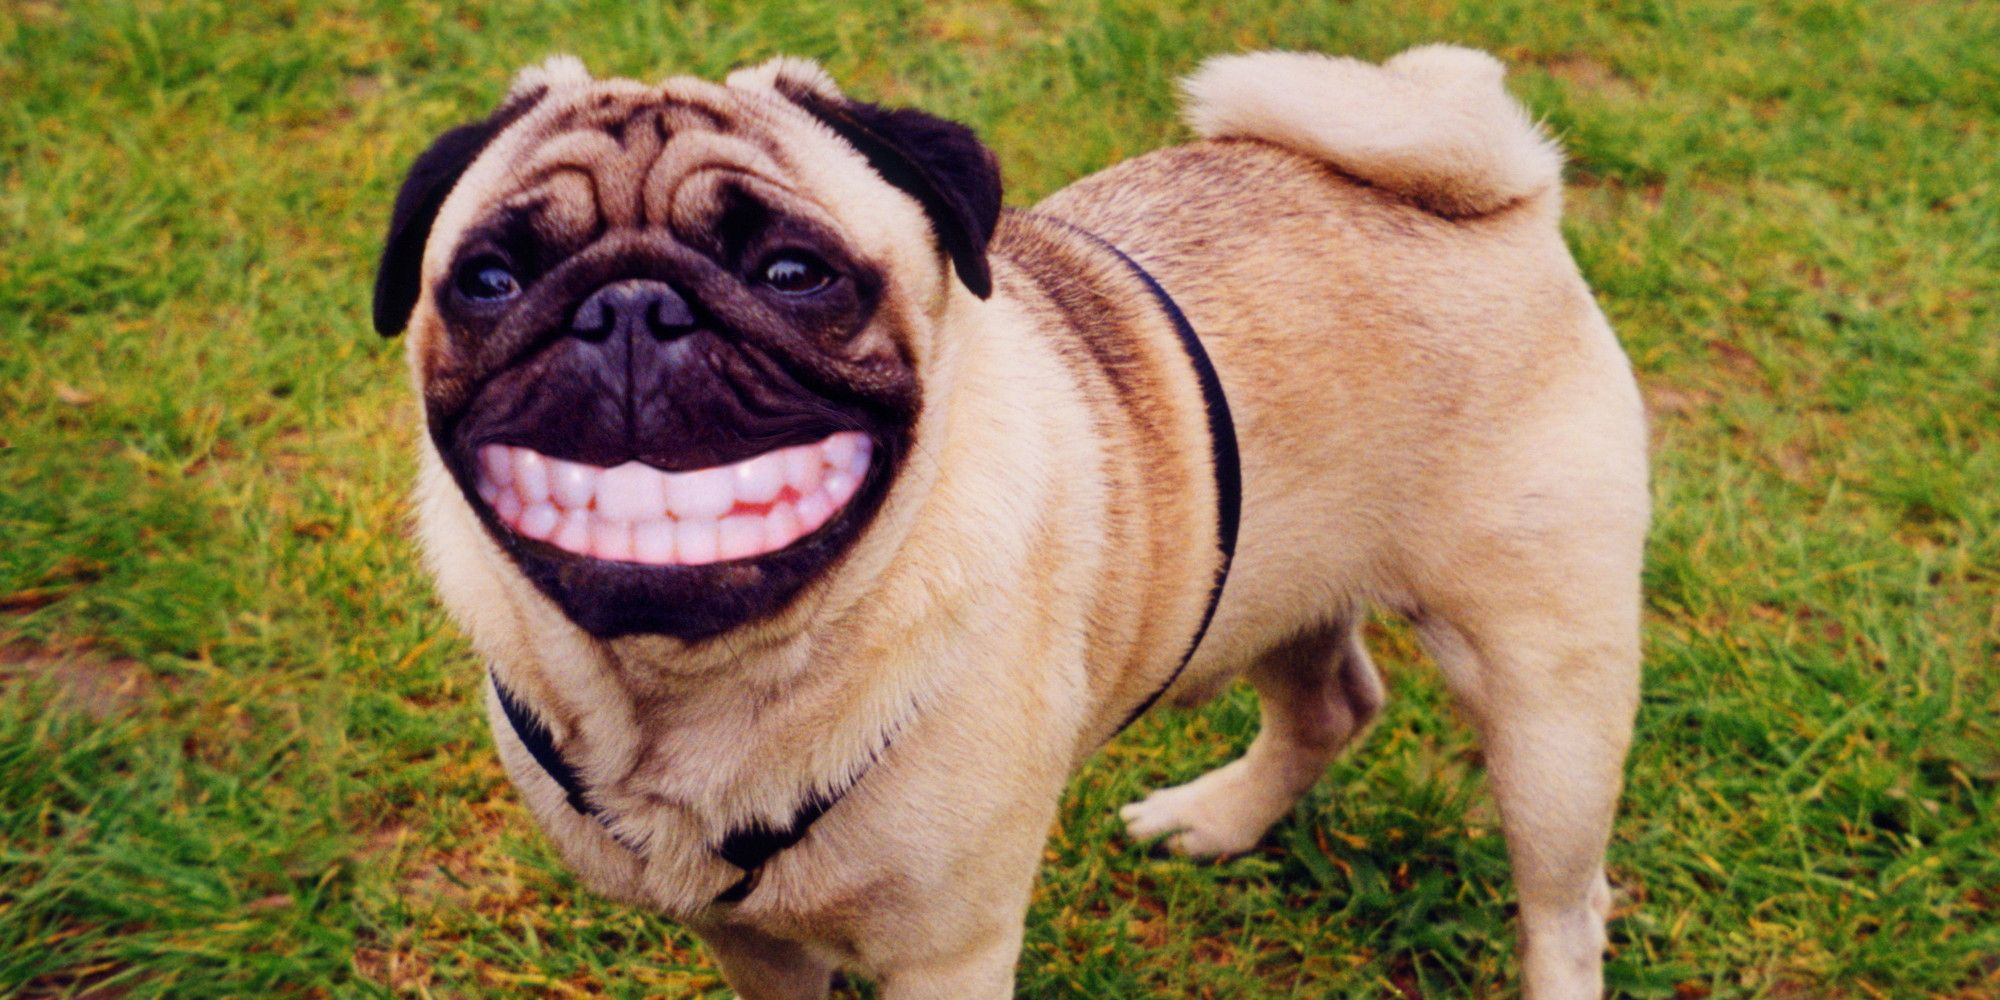 pug pooping dogs crazy pooping habits explained at last lol 3482